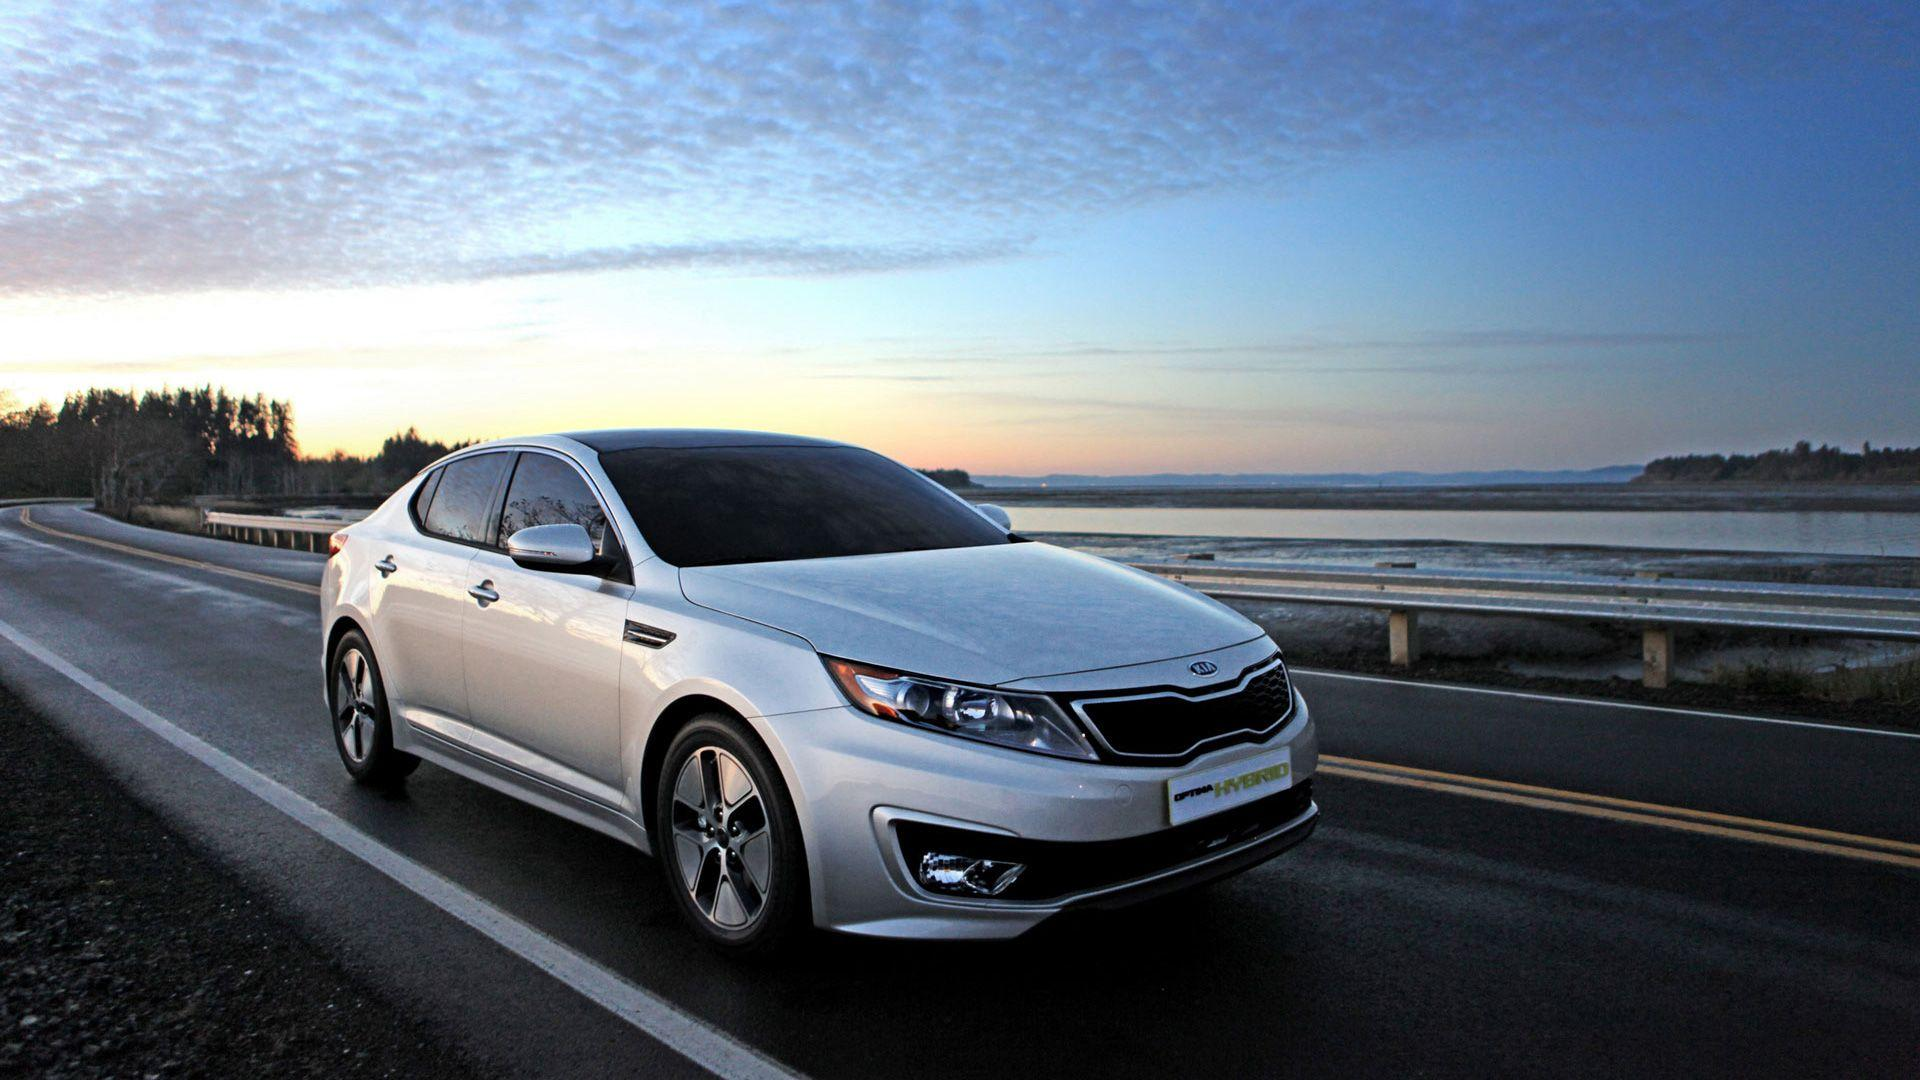 Kia Optima Hybrid Running on Highway Wallpaper